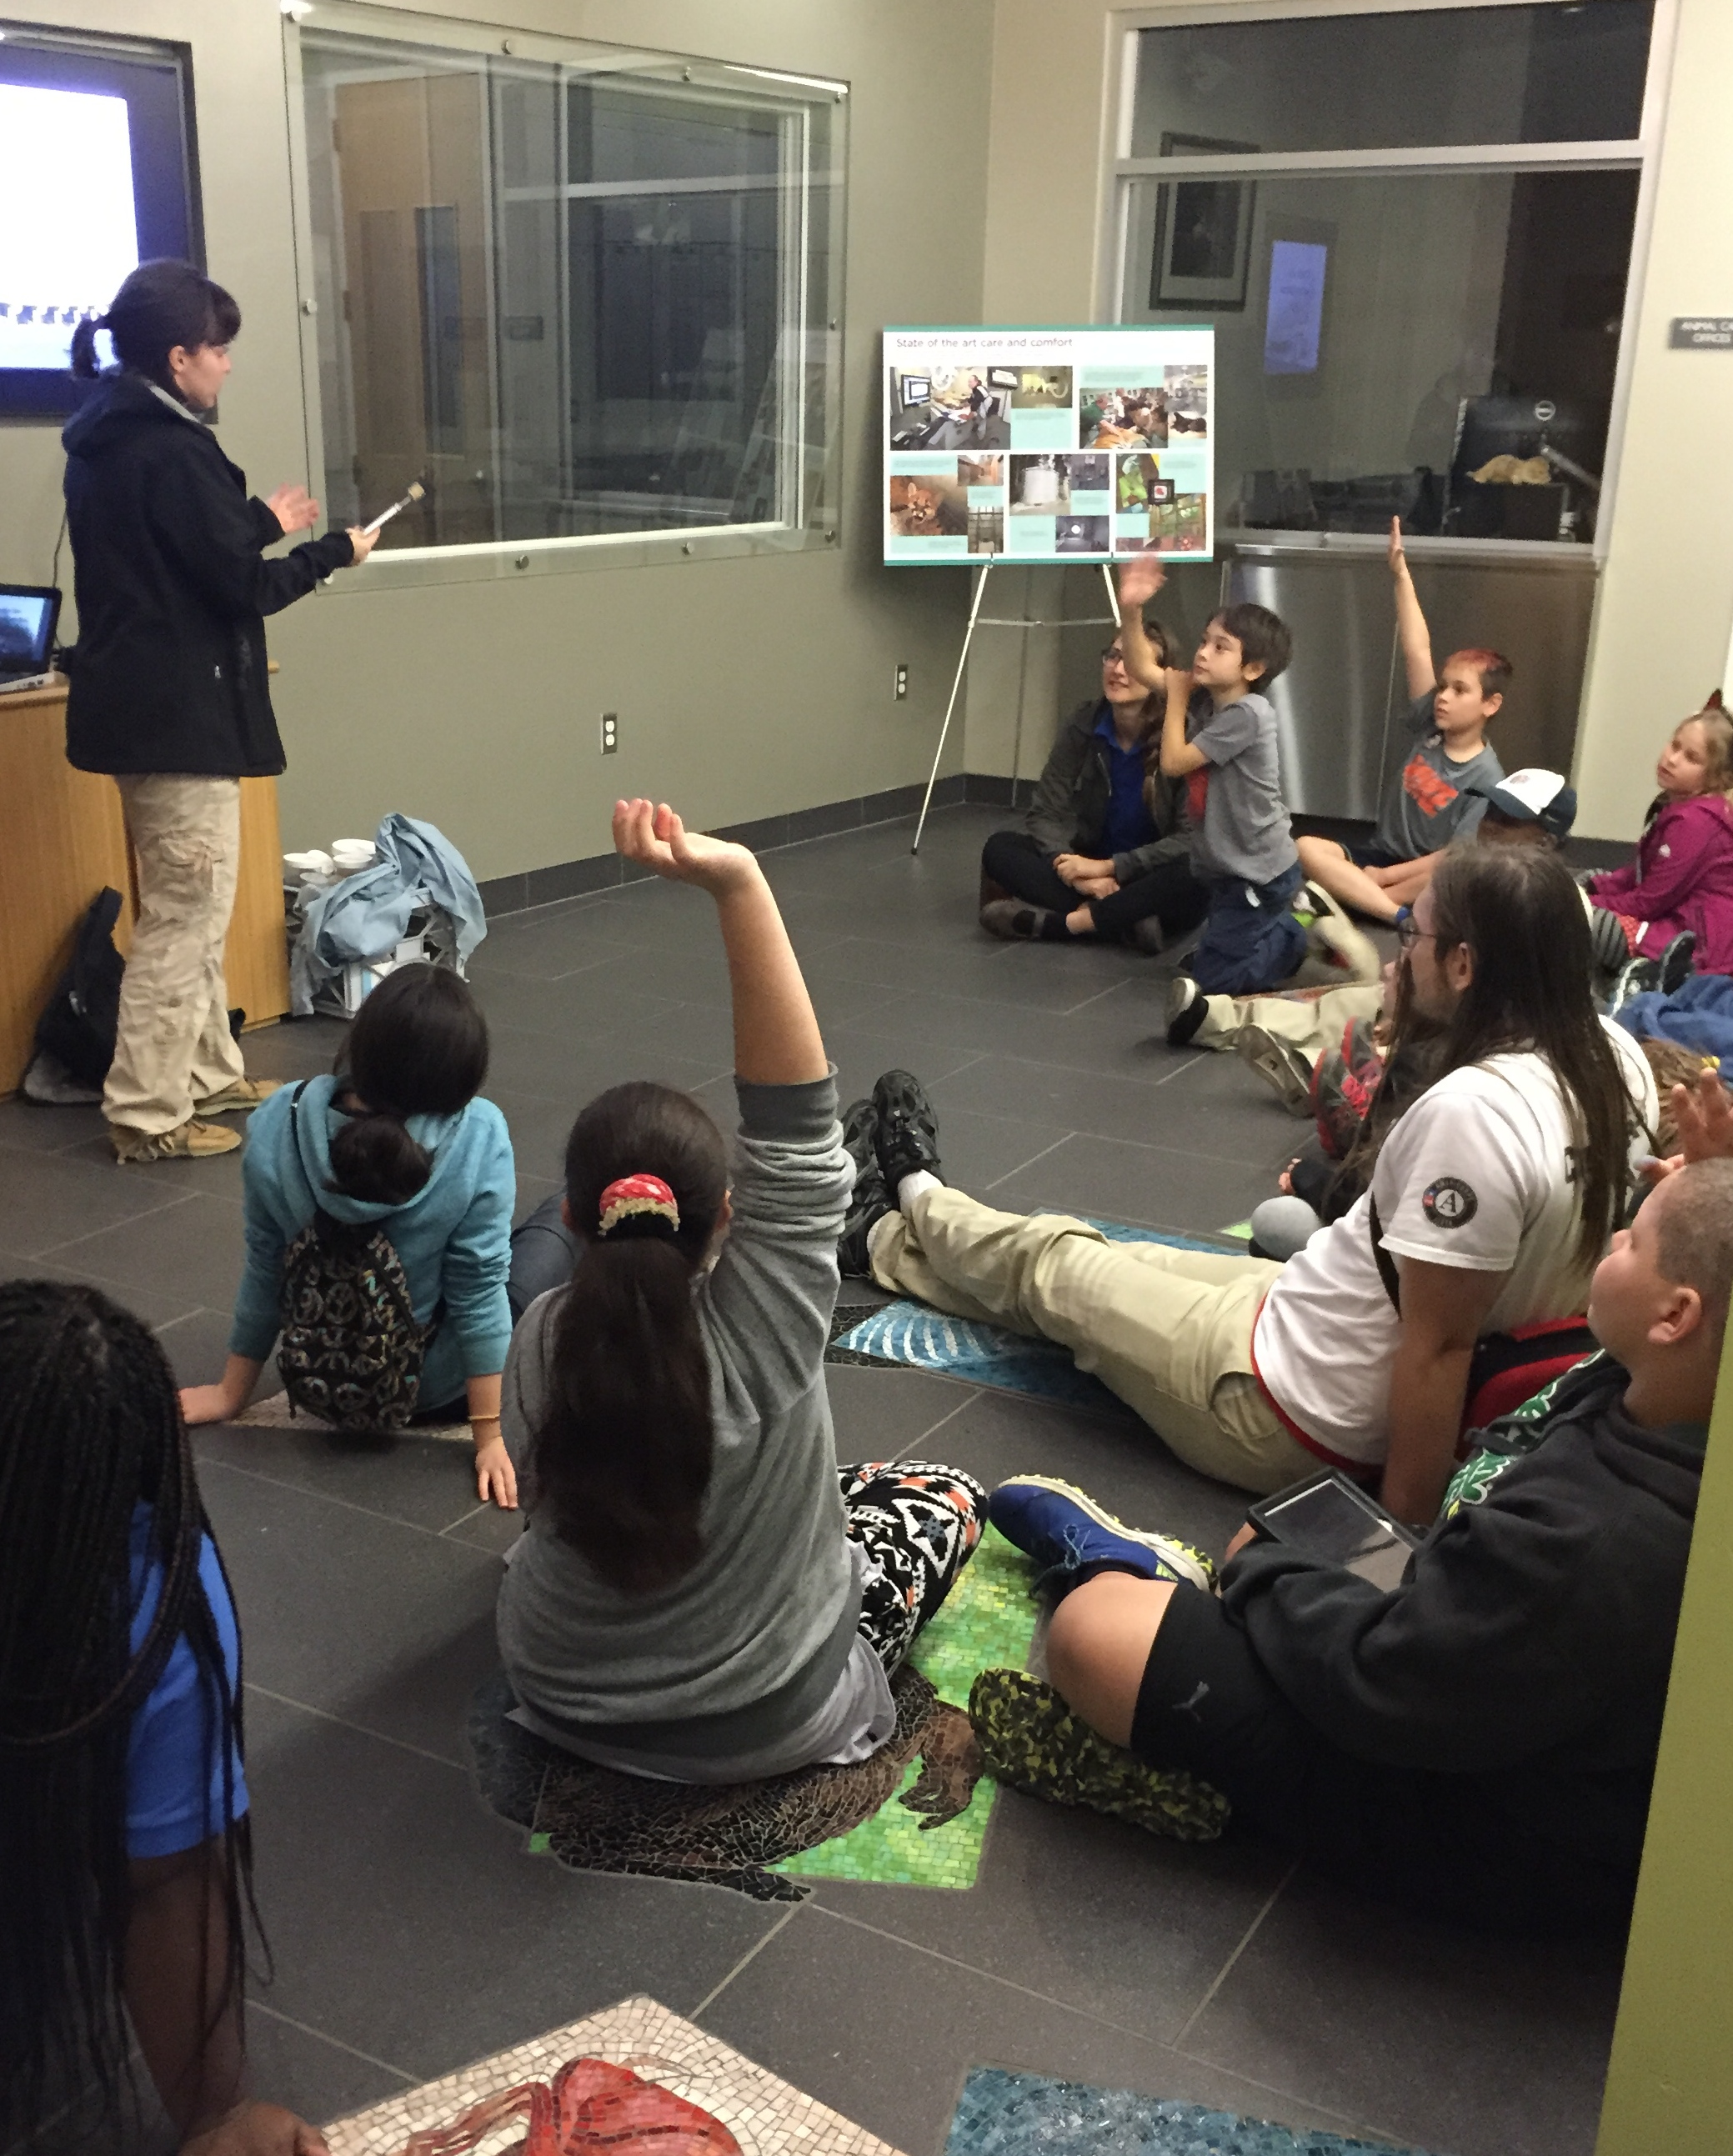 In the veterinary medical lab, we hear about the zoo's care practices.